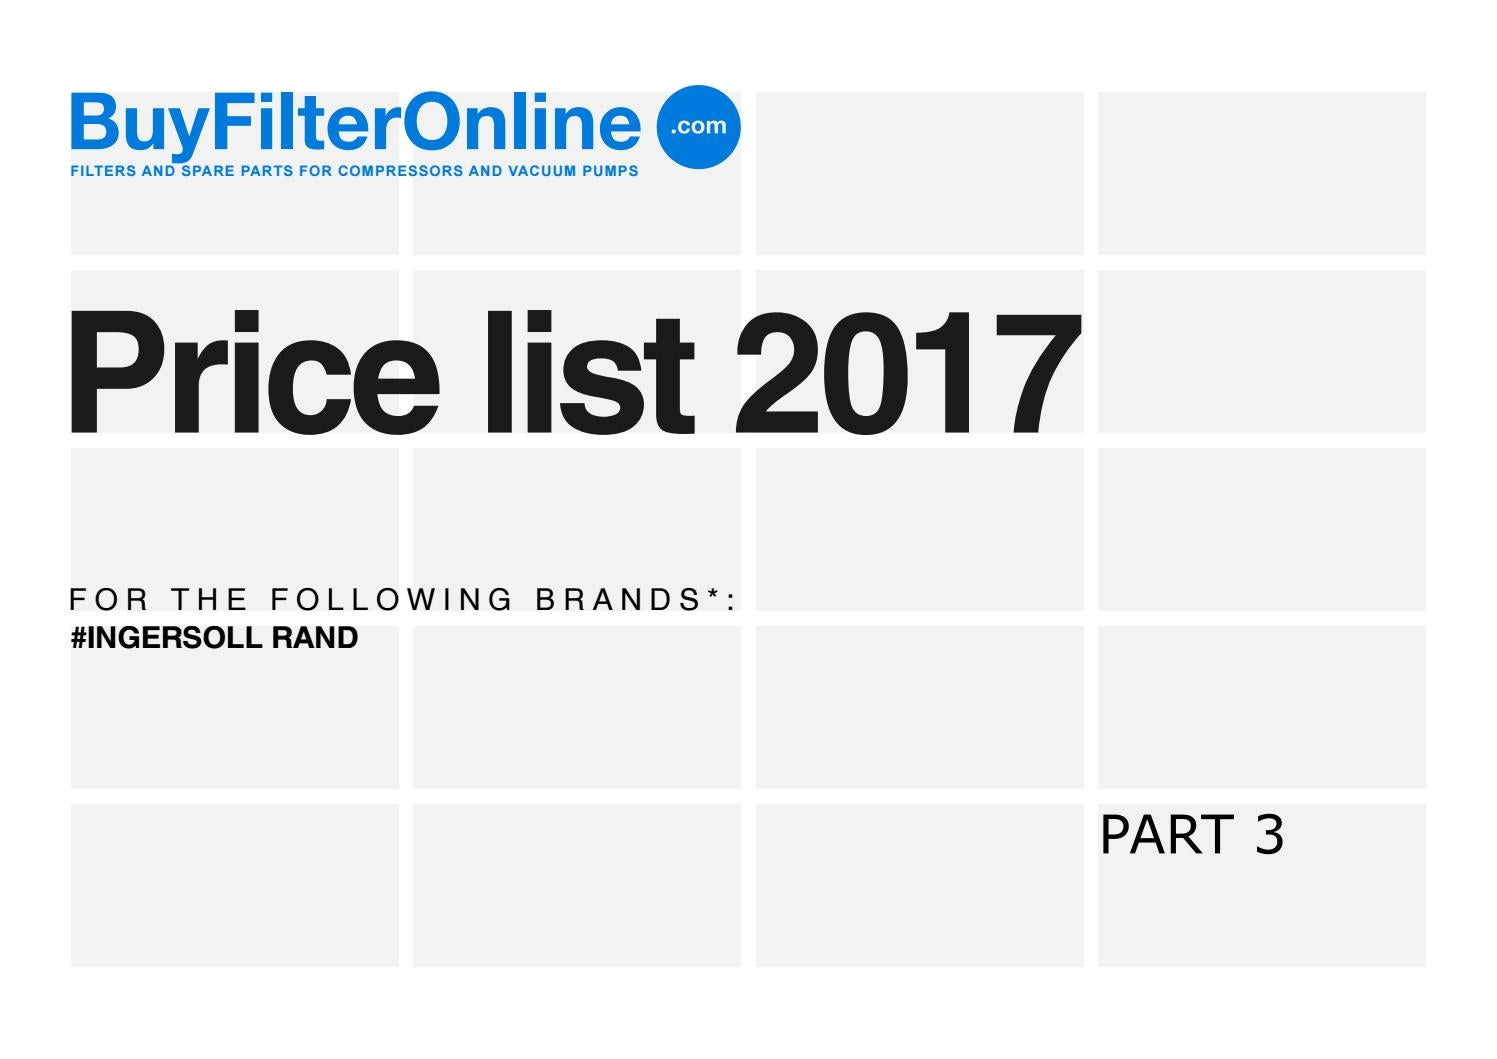 Buyfilteronlinecom Filters For Compressors Price List 2017 Ingersoll Rand 2475 Wiring Diagram Part 3 By Oilservice Issuu